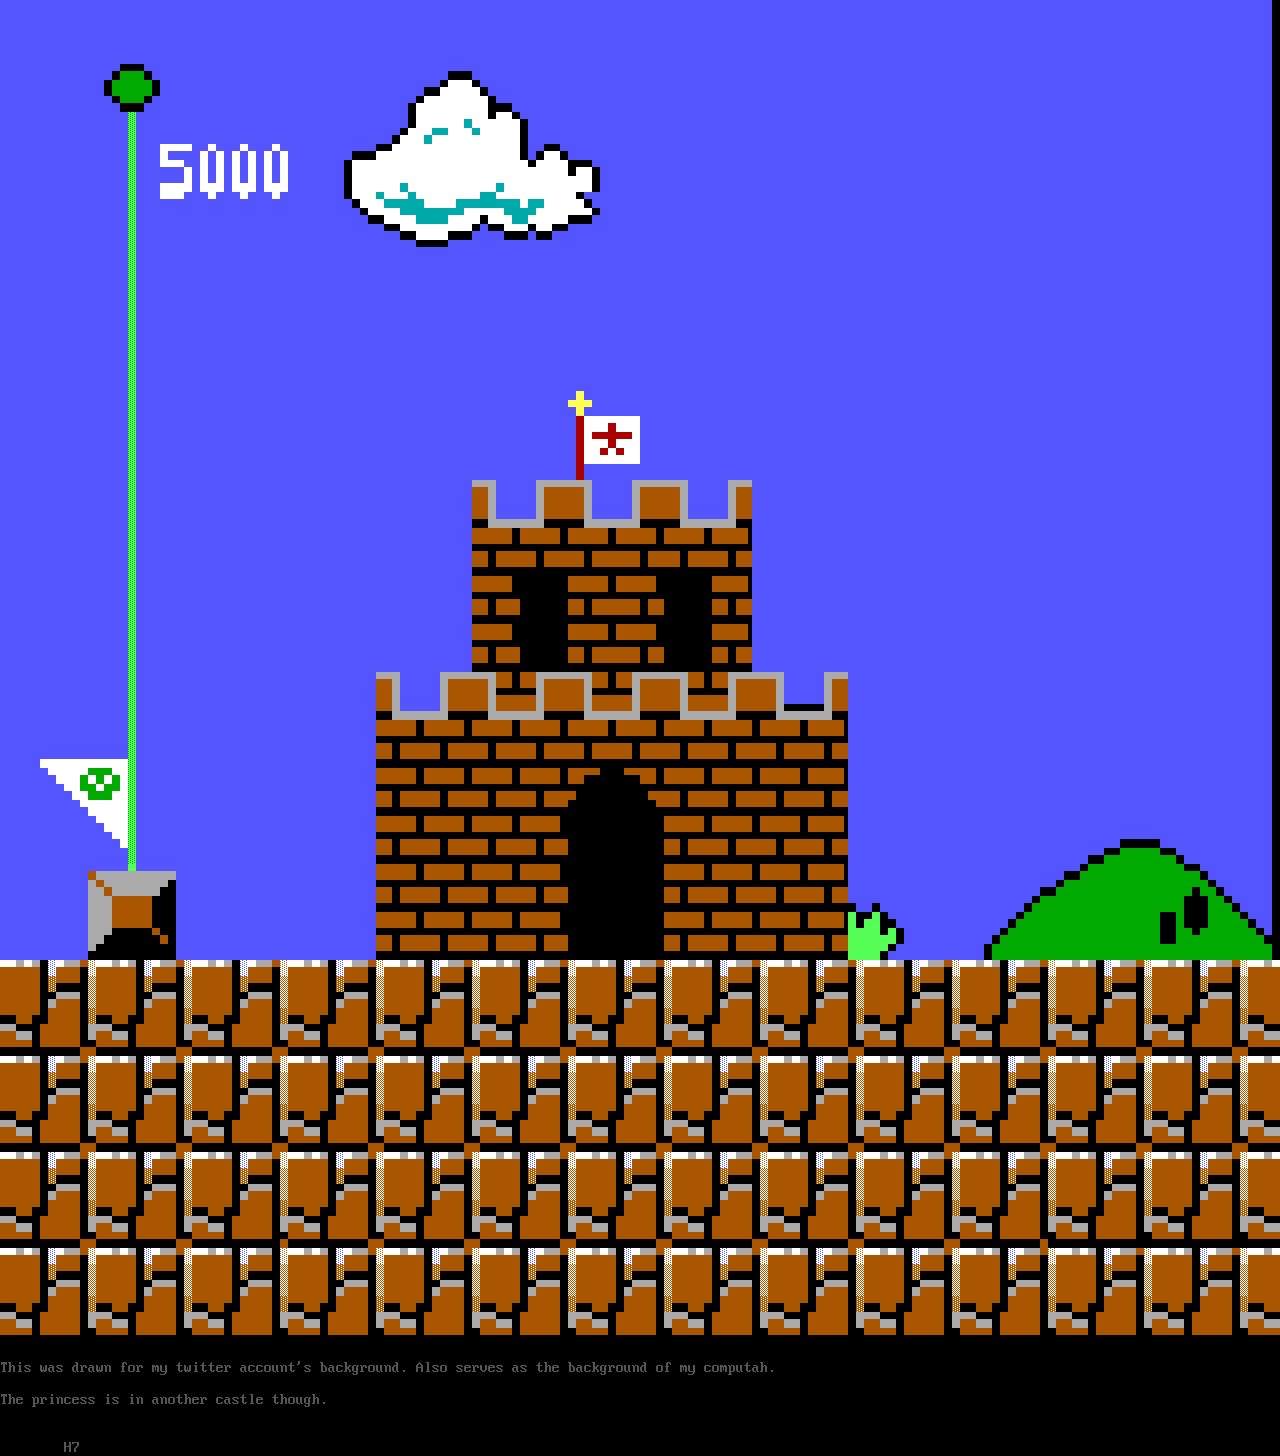 h7-supermariocastle.xb